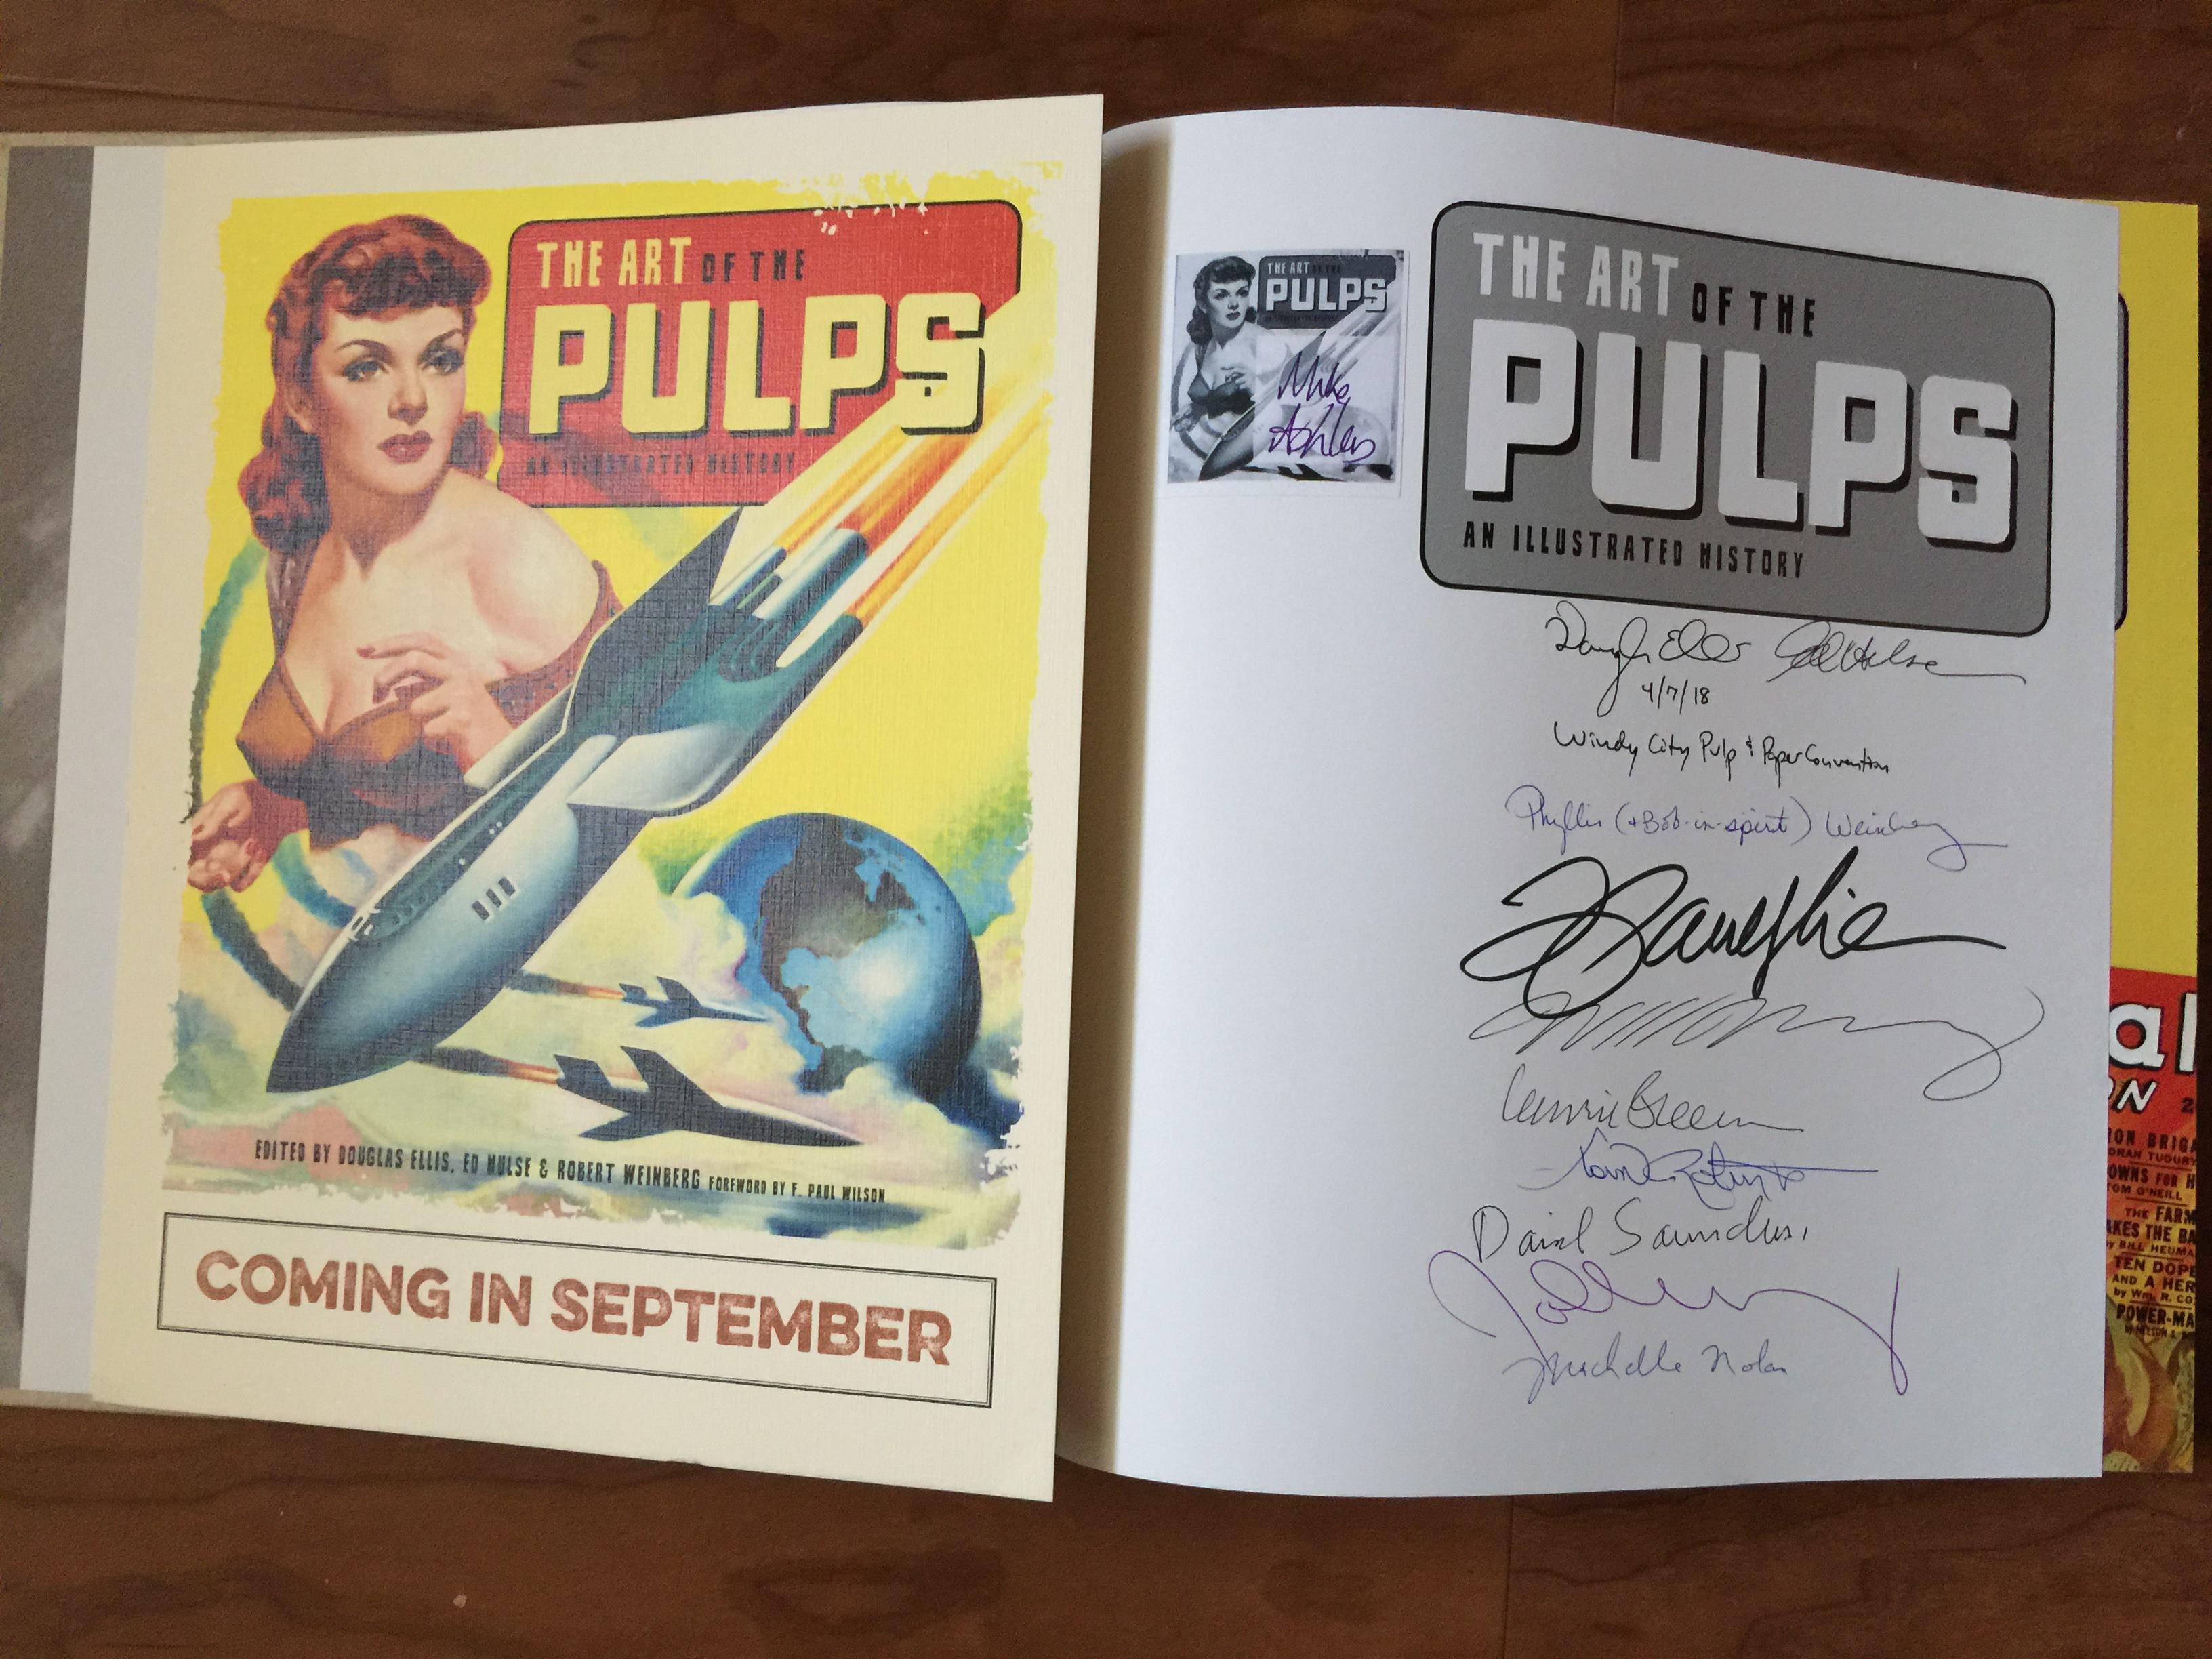 My signed copy of the Art of the Pulps - a great book, and one you should buy if you haven't already